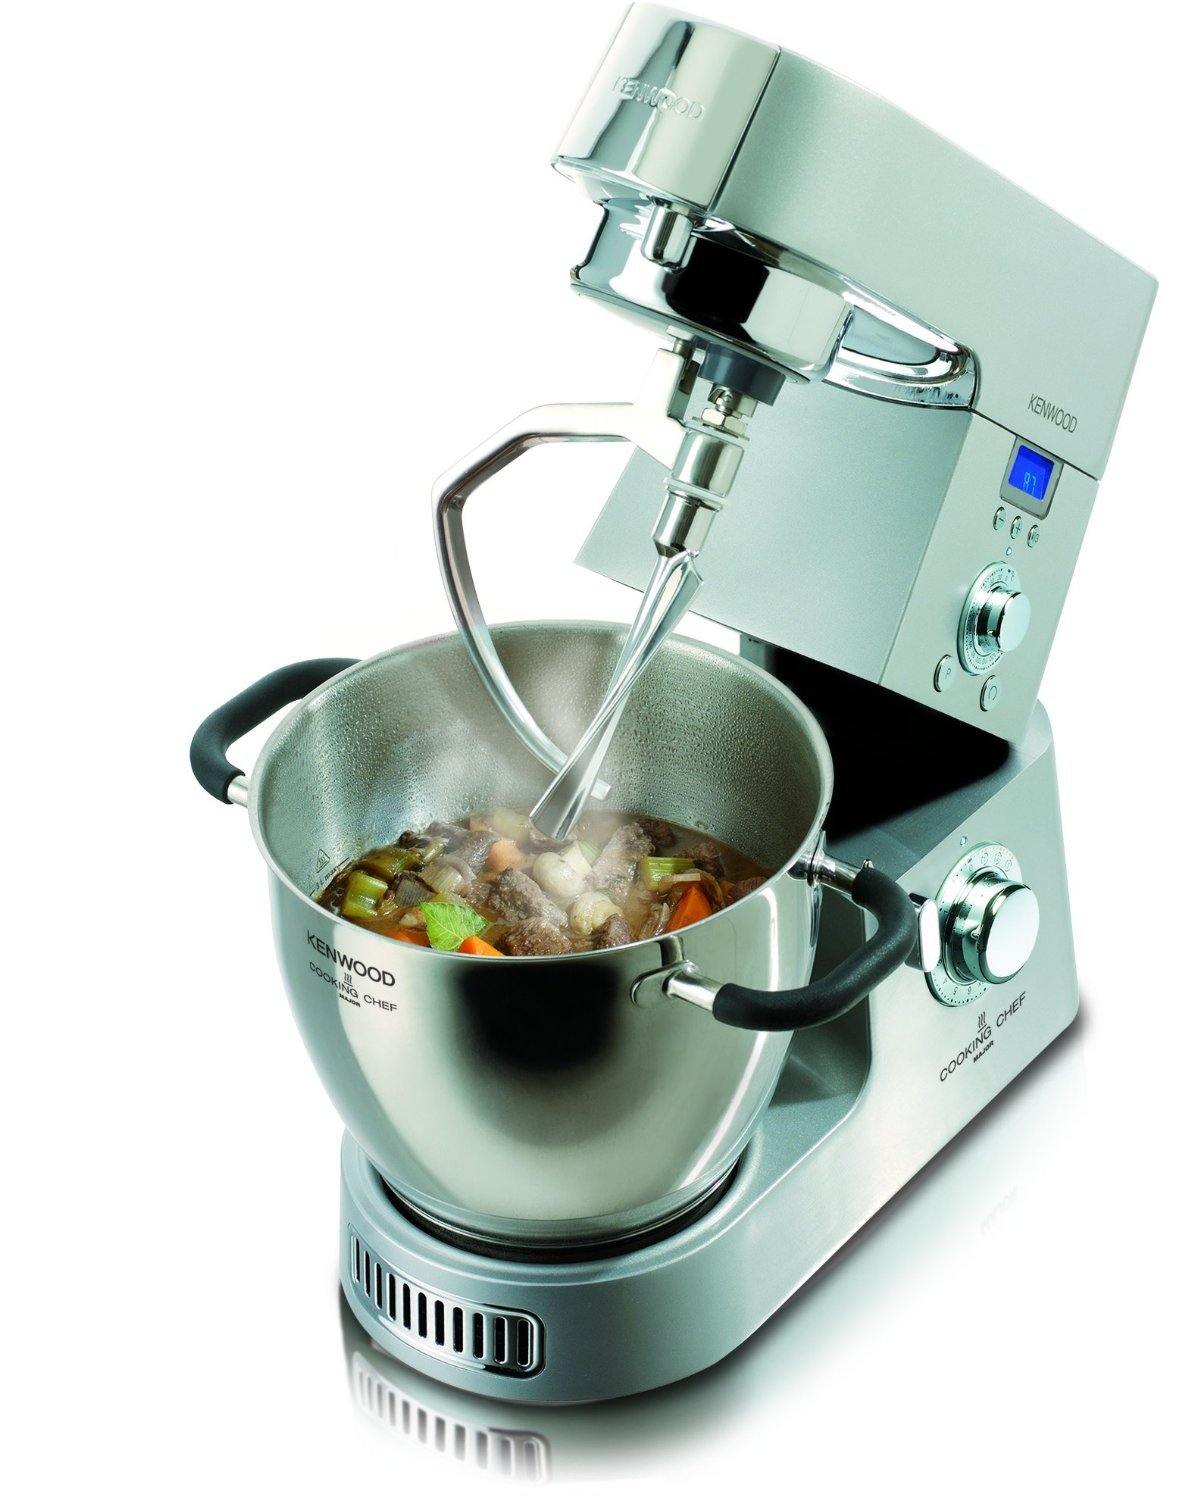 Awesome Robot Cucina Kenwood Cooking Chef Images - Design & Ideas ...